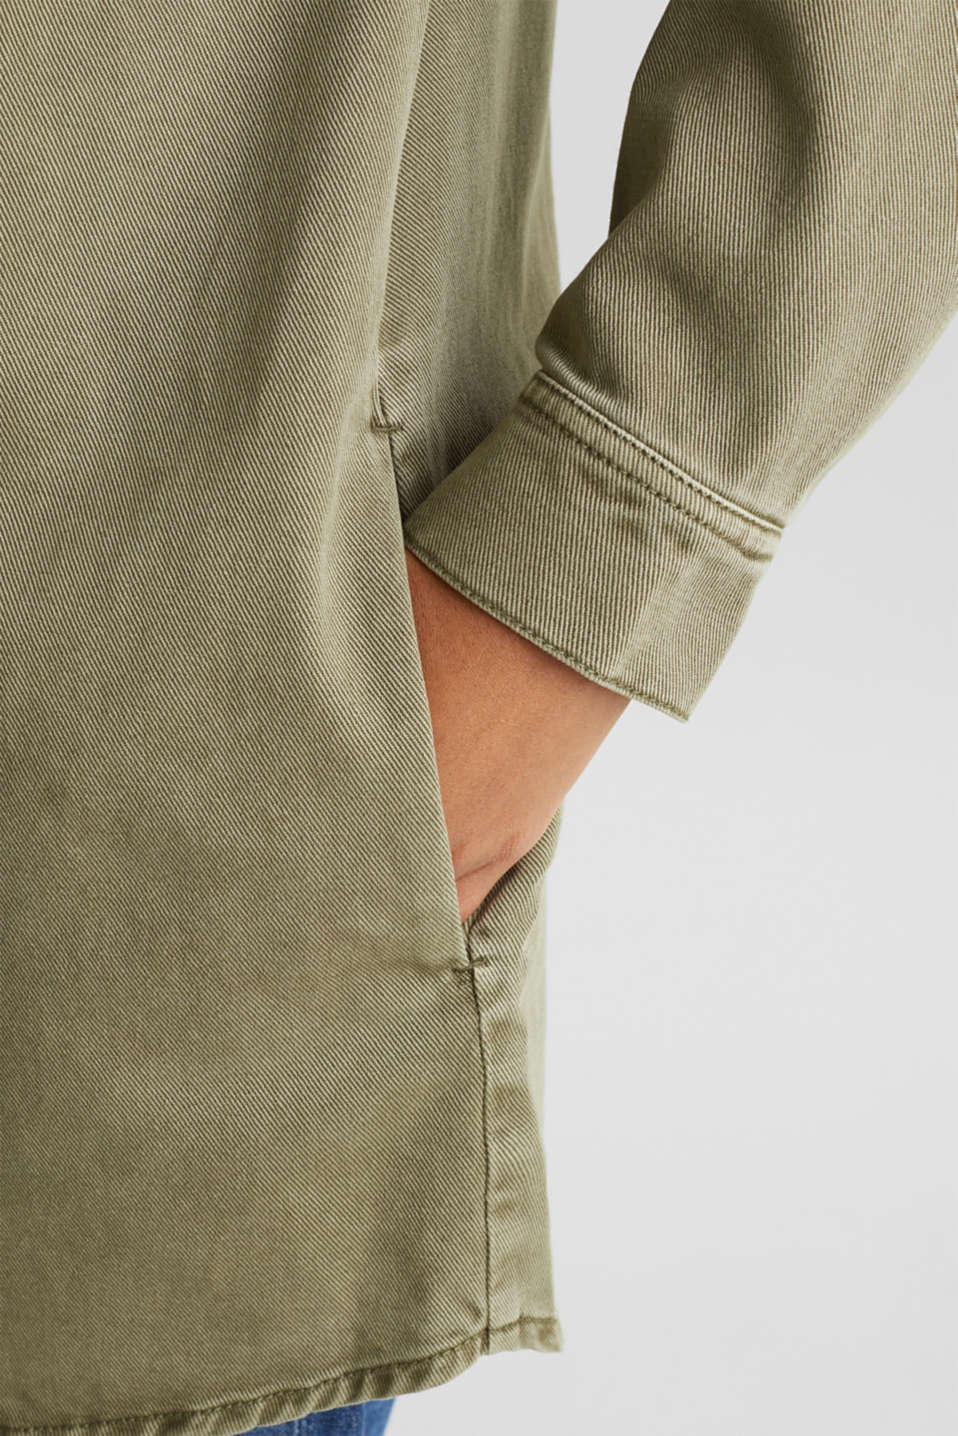 Blouse jacket made of canvas, 100% cotton, KHAKI GREEN, detail image number 6